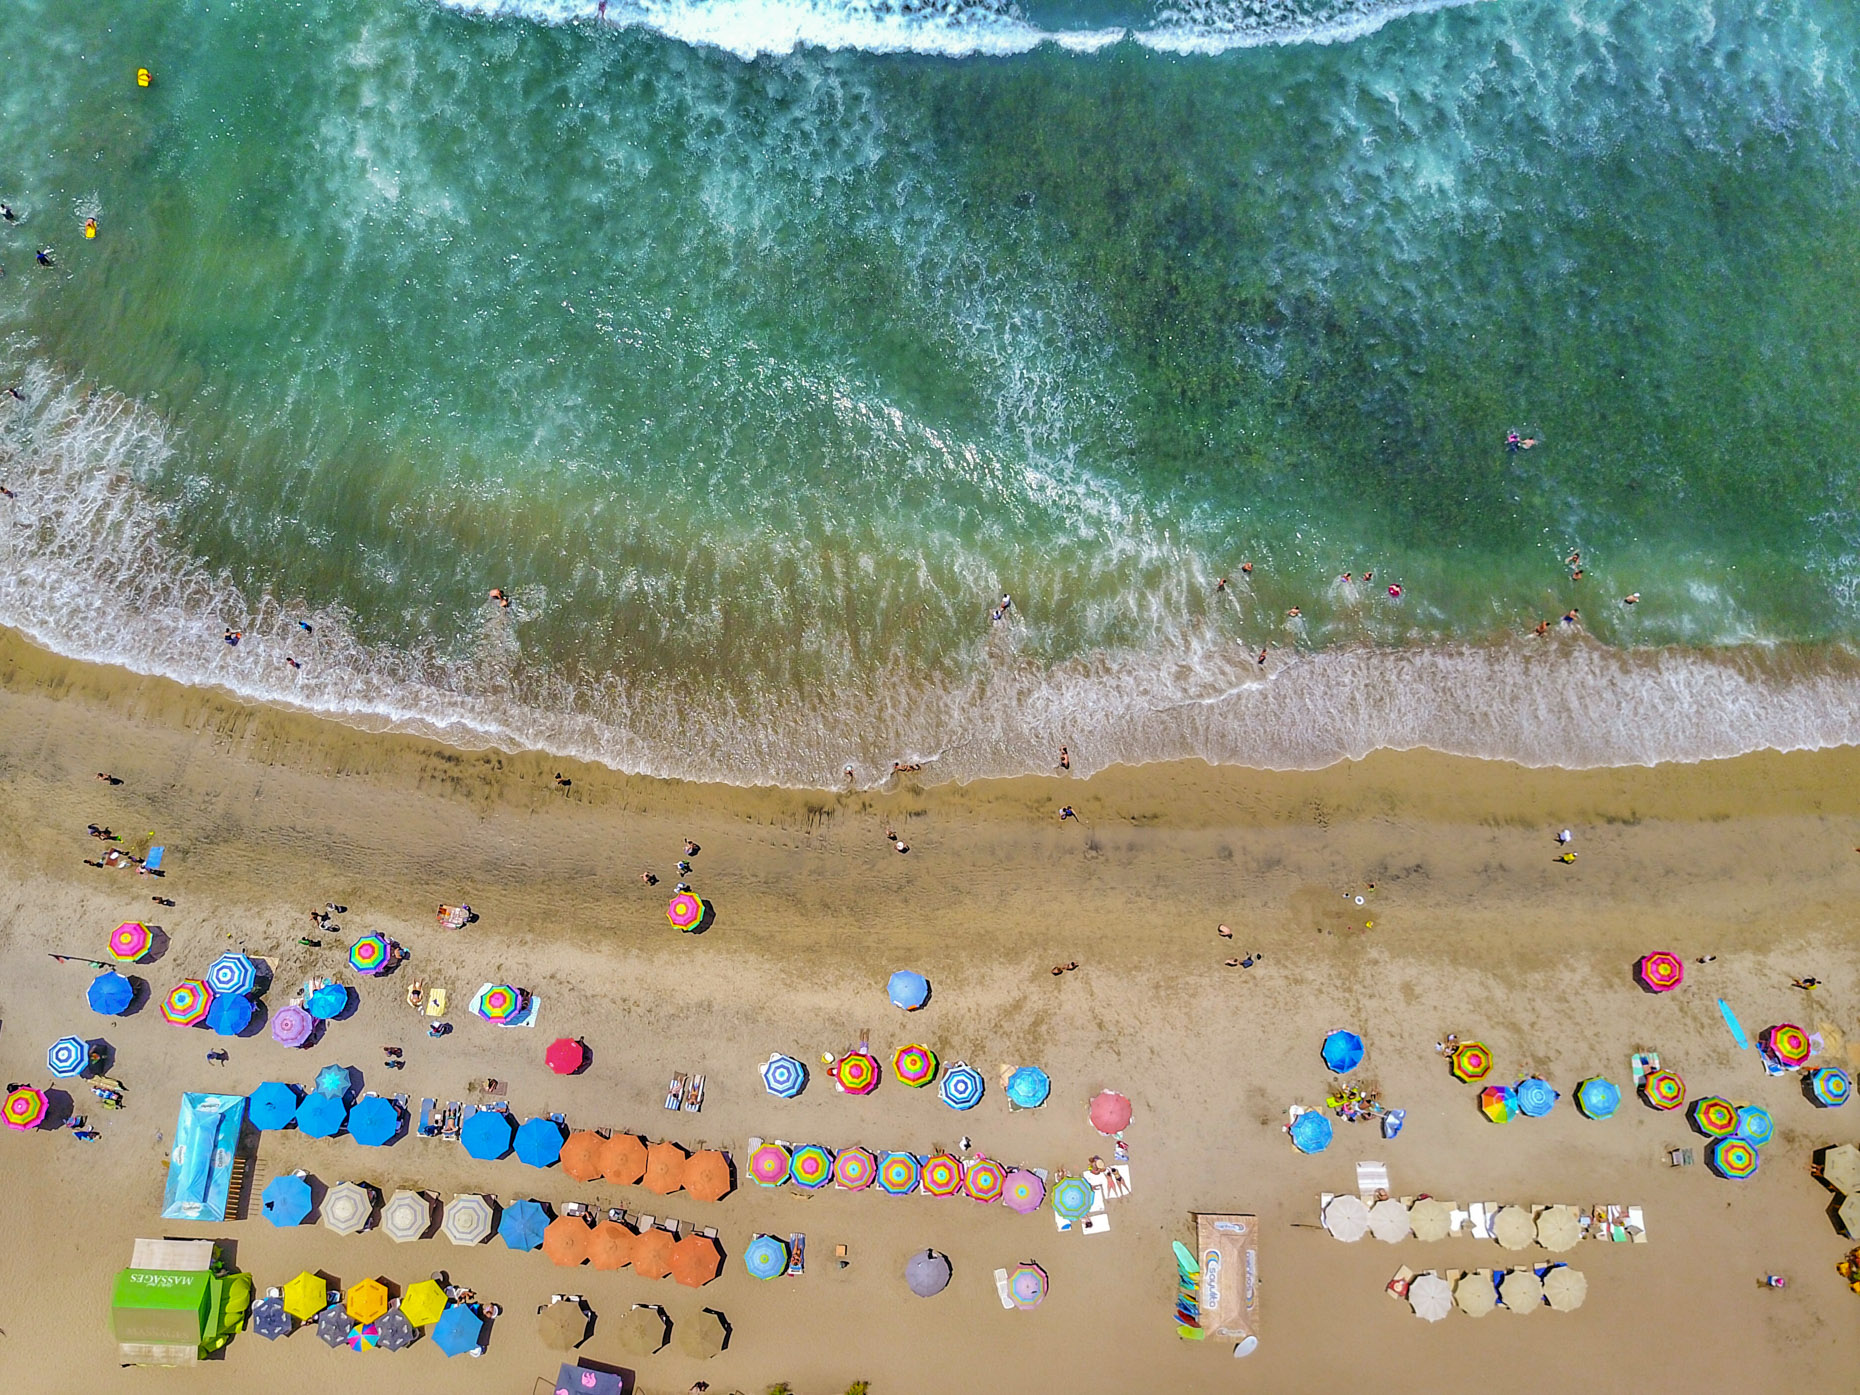 Overhead view of beach with colorful umbrellas